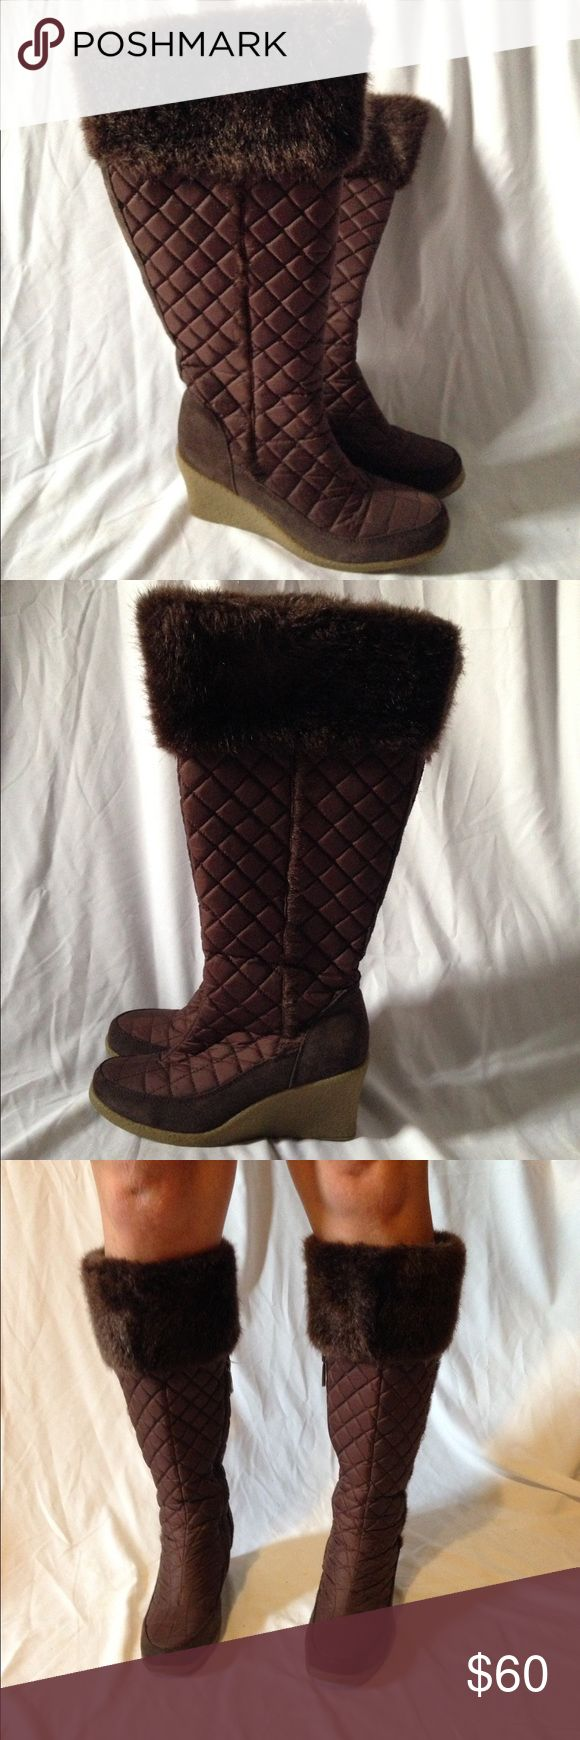 Colin Stuart brown wedges boots size 7. Colin Stuart brown wedges boots size 7. Wore it a few times but are in excellent condition . Round toes stitch accents, Wedge heel and side zip for easy slip on and off Size 7 heel 3. Super cute boots. Please see pictures. Colin Stuart Shoes Winter & Rain Boots